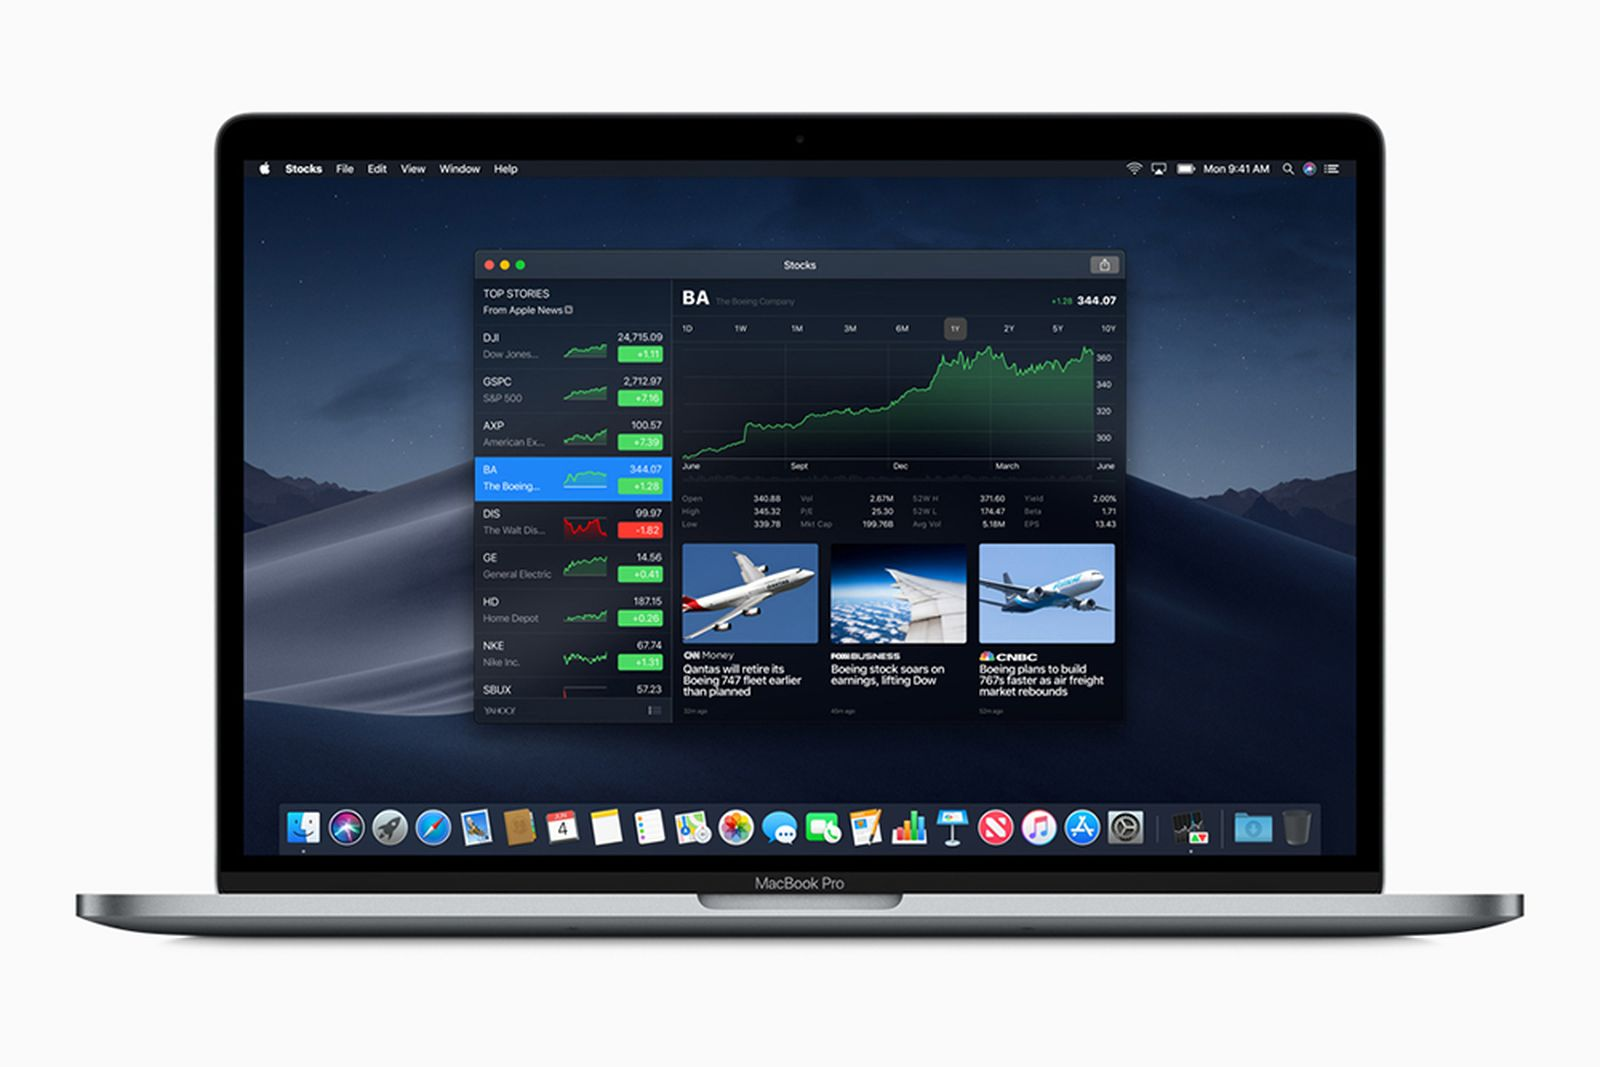 apple macos mojave Apple WWDC 2018